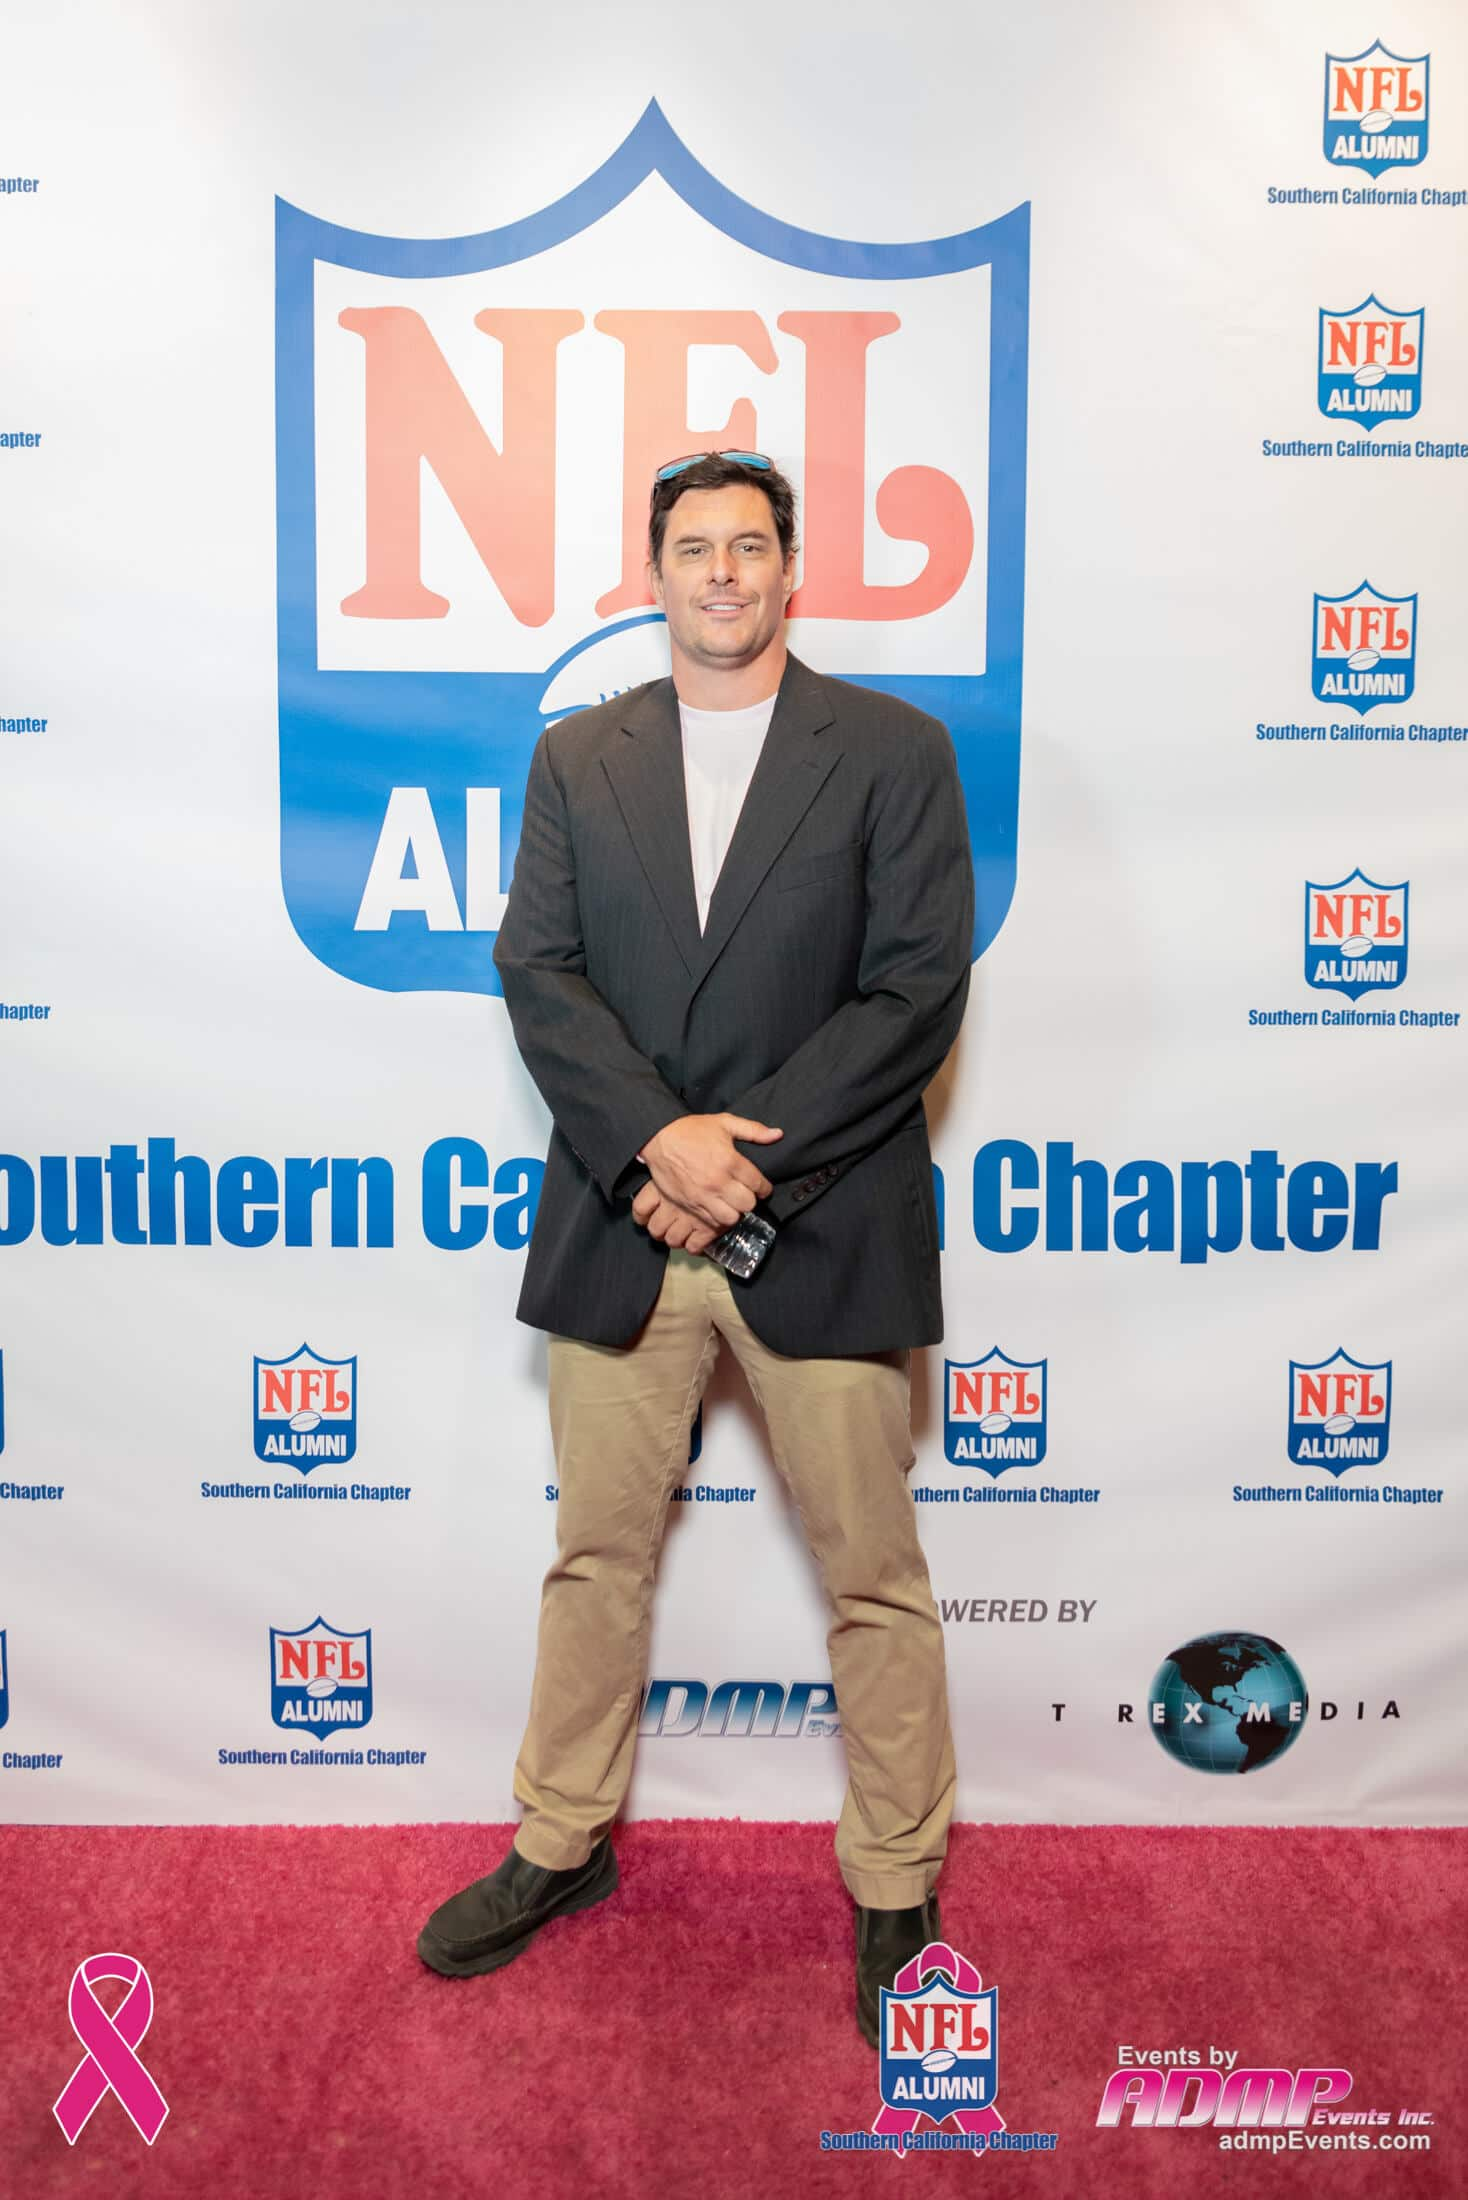 NFL Alumni SoCal Charity Event Series Breast Cancer Event 10-14-19-297